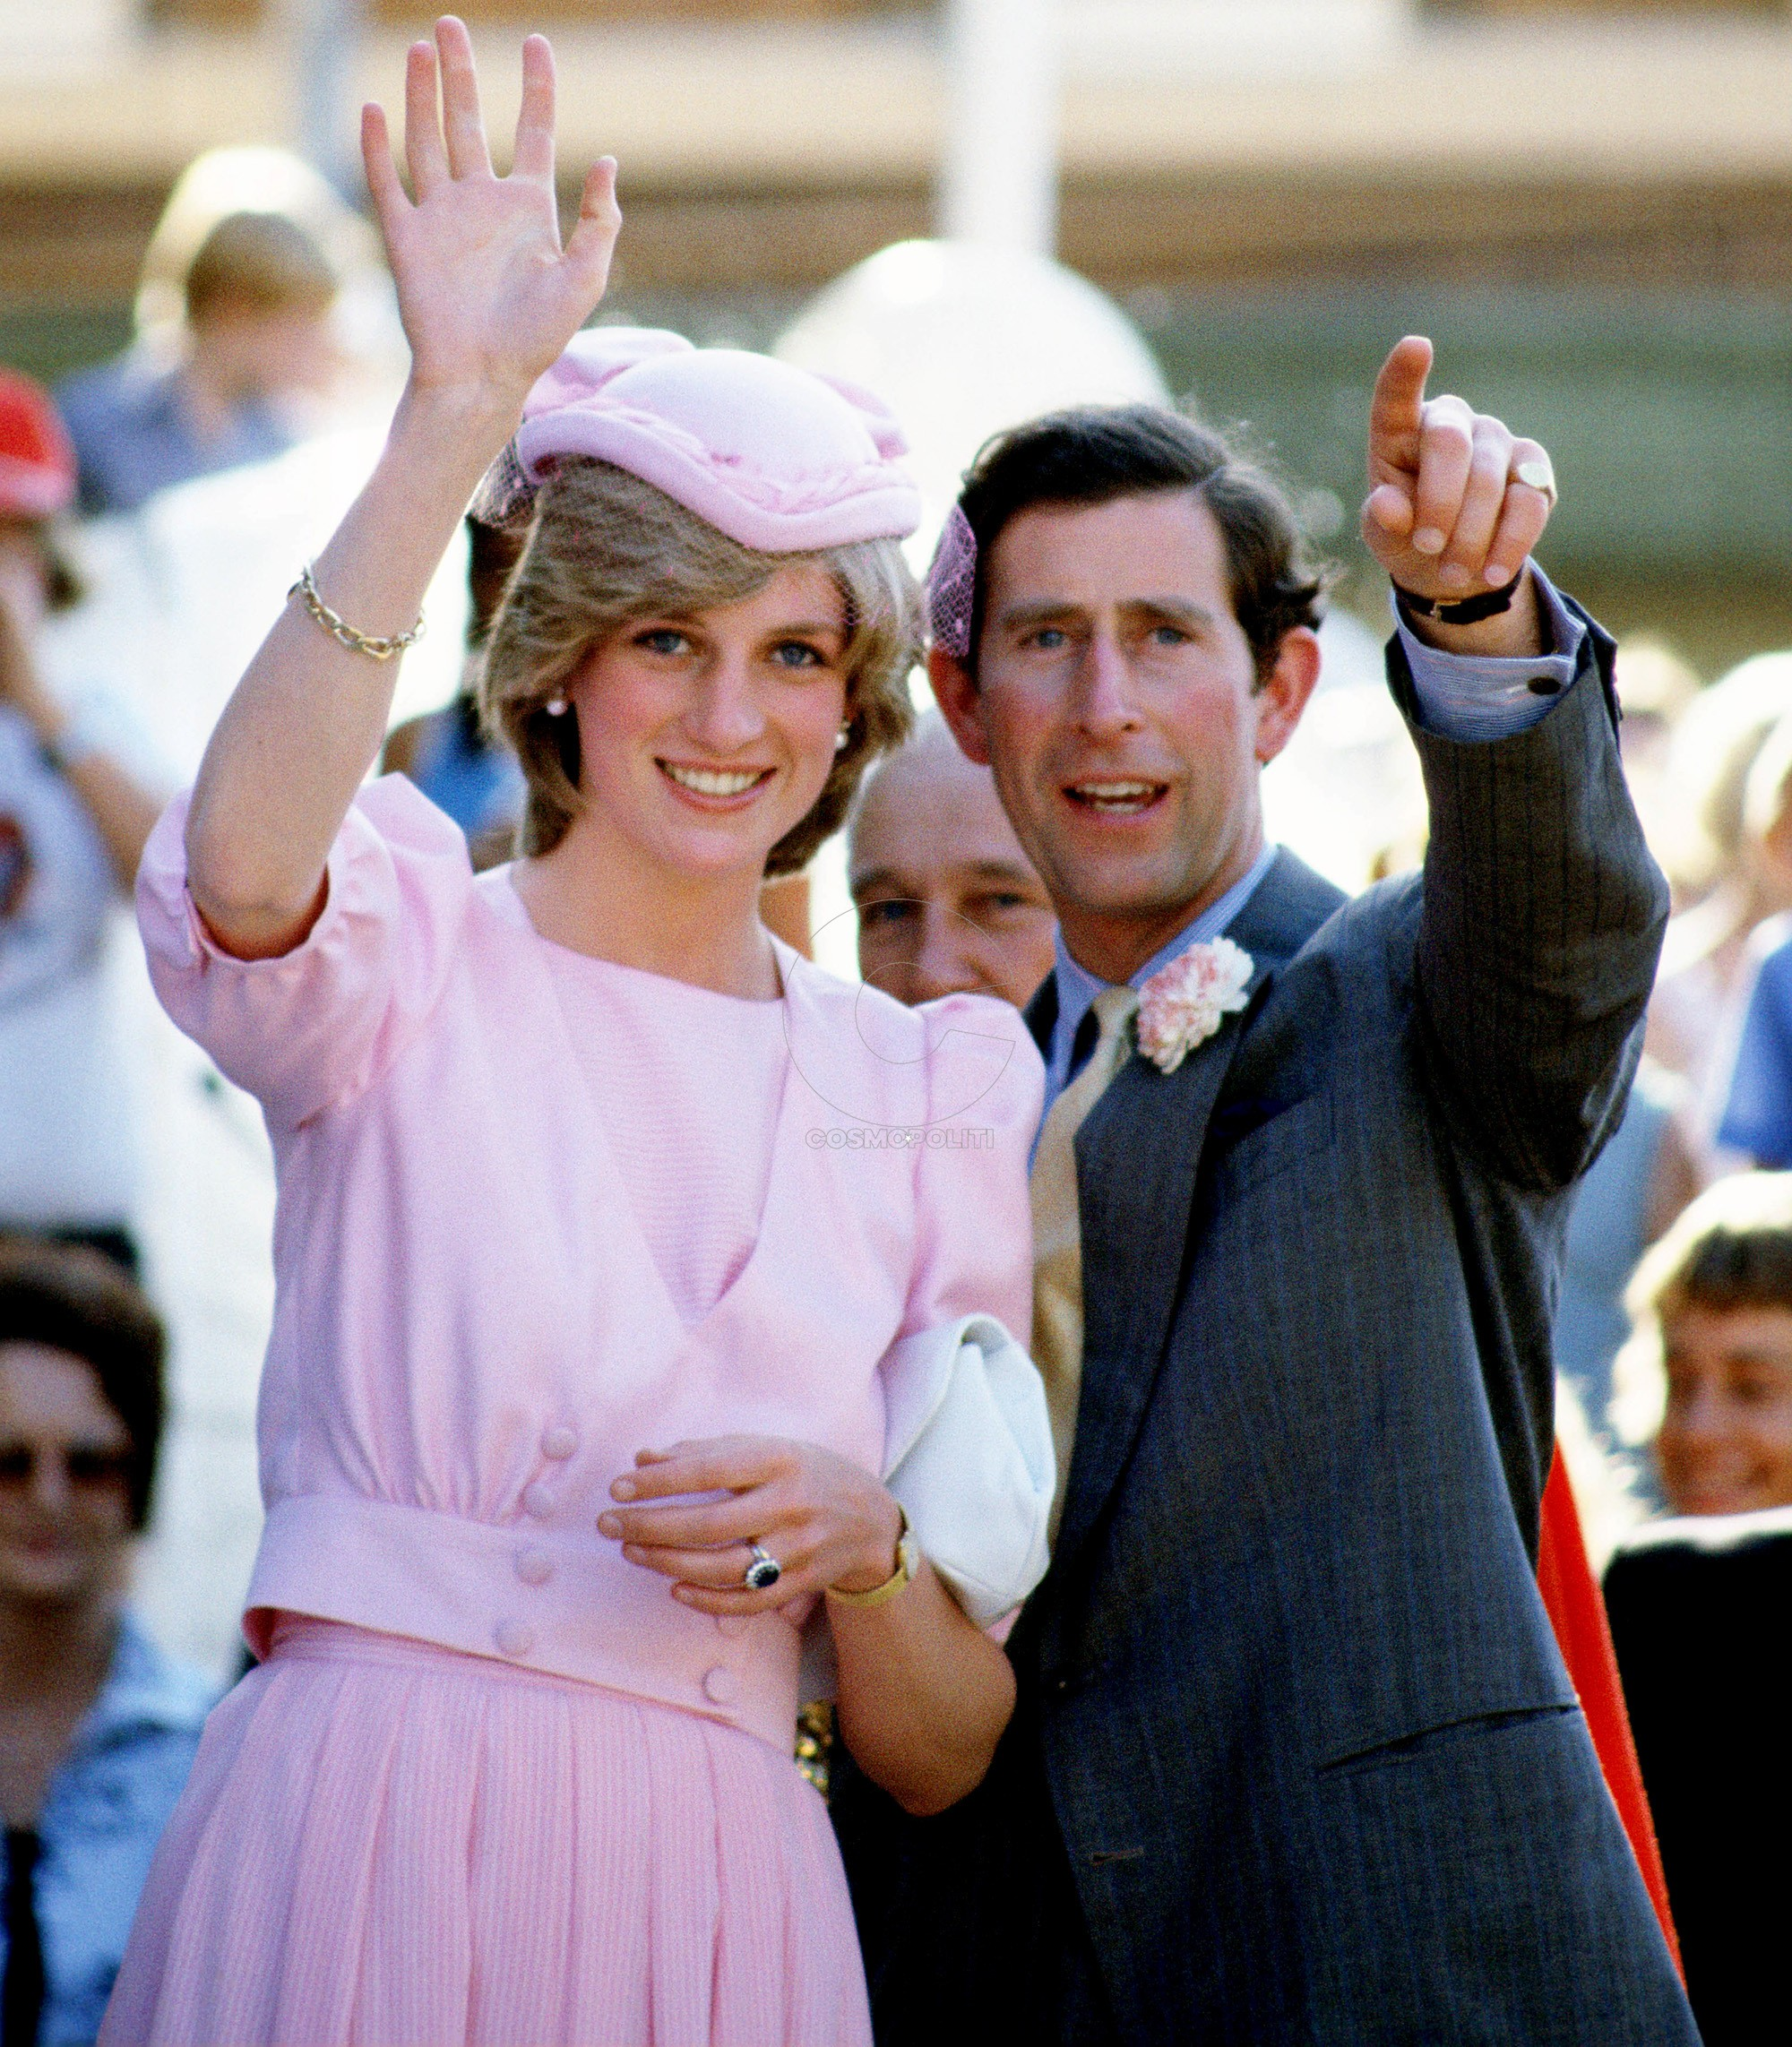 AUSTRALIA - MARCH 29: Prince Charles, Prince of Wales and Diana, Princess of Wales wave to the crowds of well-wishers during their first tour to Australia (Photo by Tim Graham/Getty Images)